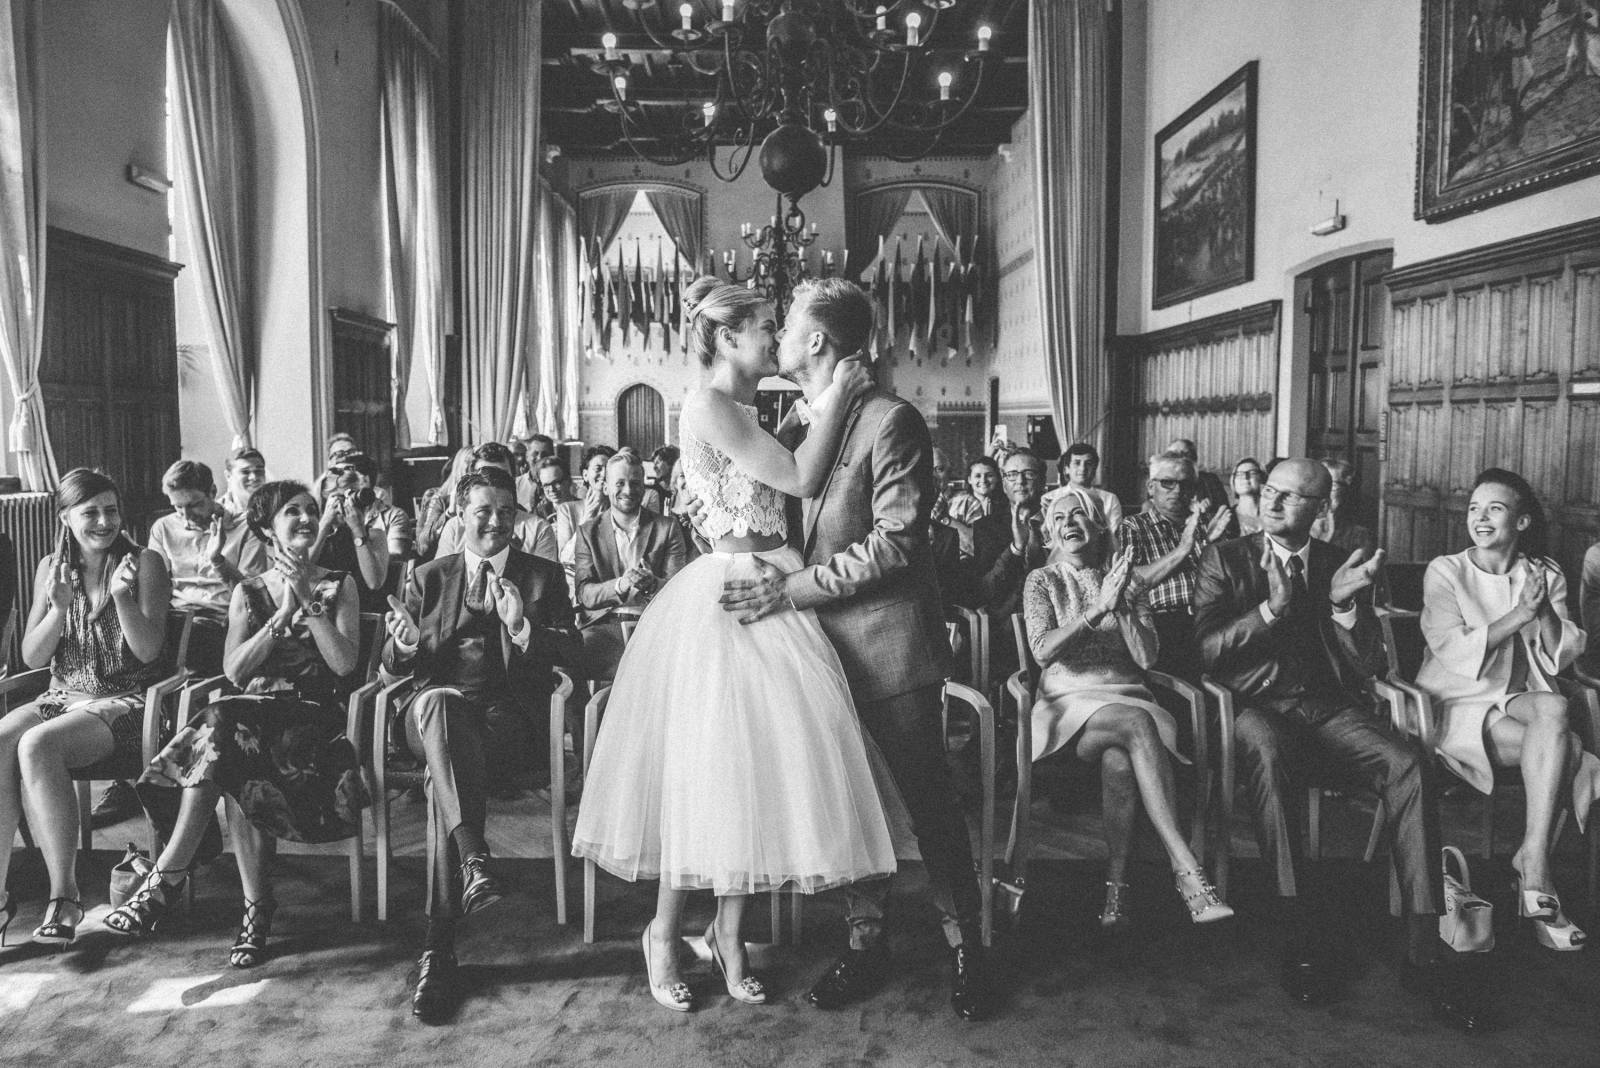 Speaking Through Silence Photography - Huwelijksfotograaf - House of Weddings - 6